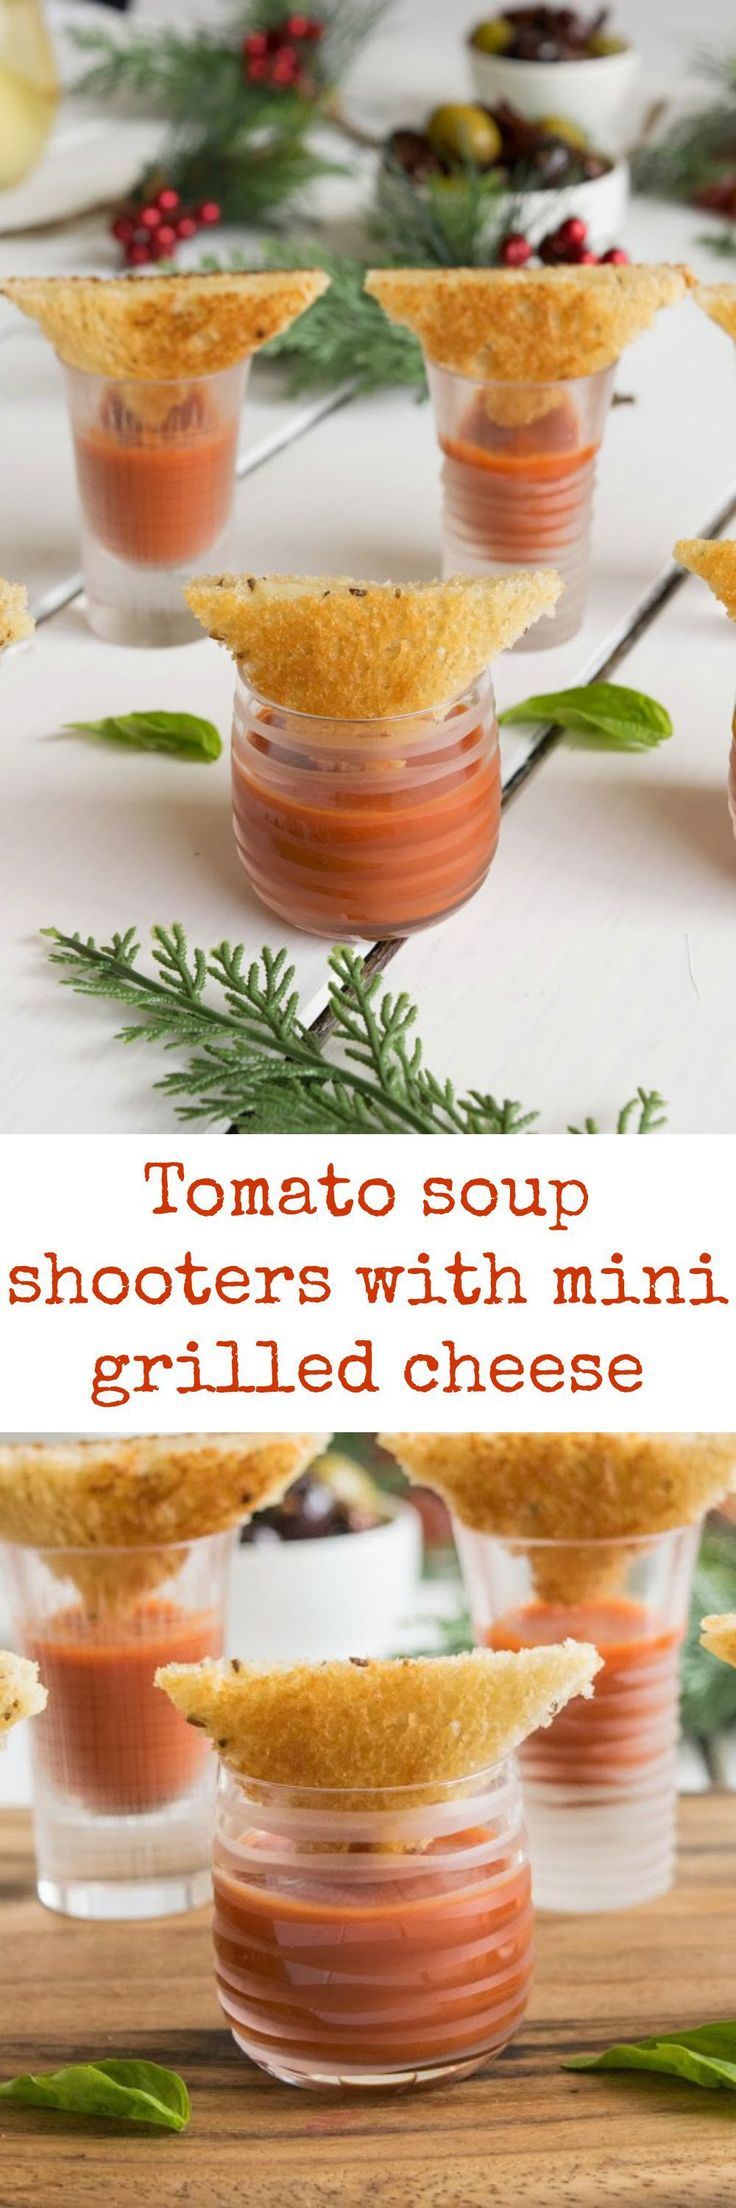 Mini grilled cheese gets a dipping vessel from tomato soup shooters. It's comfort in 2 bites that make great party food or appetizers.